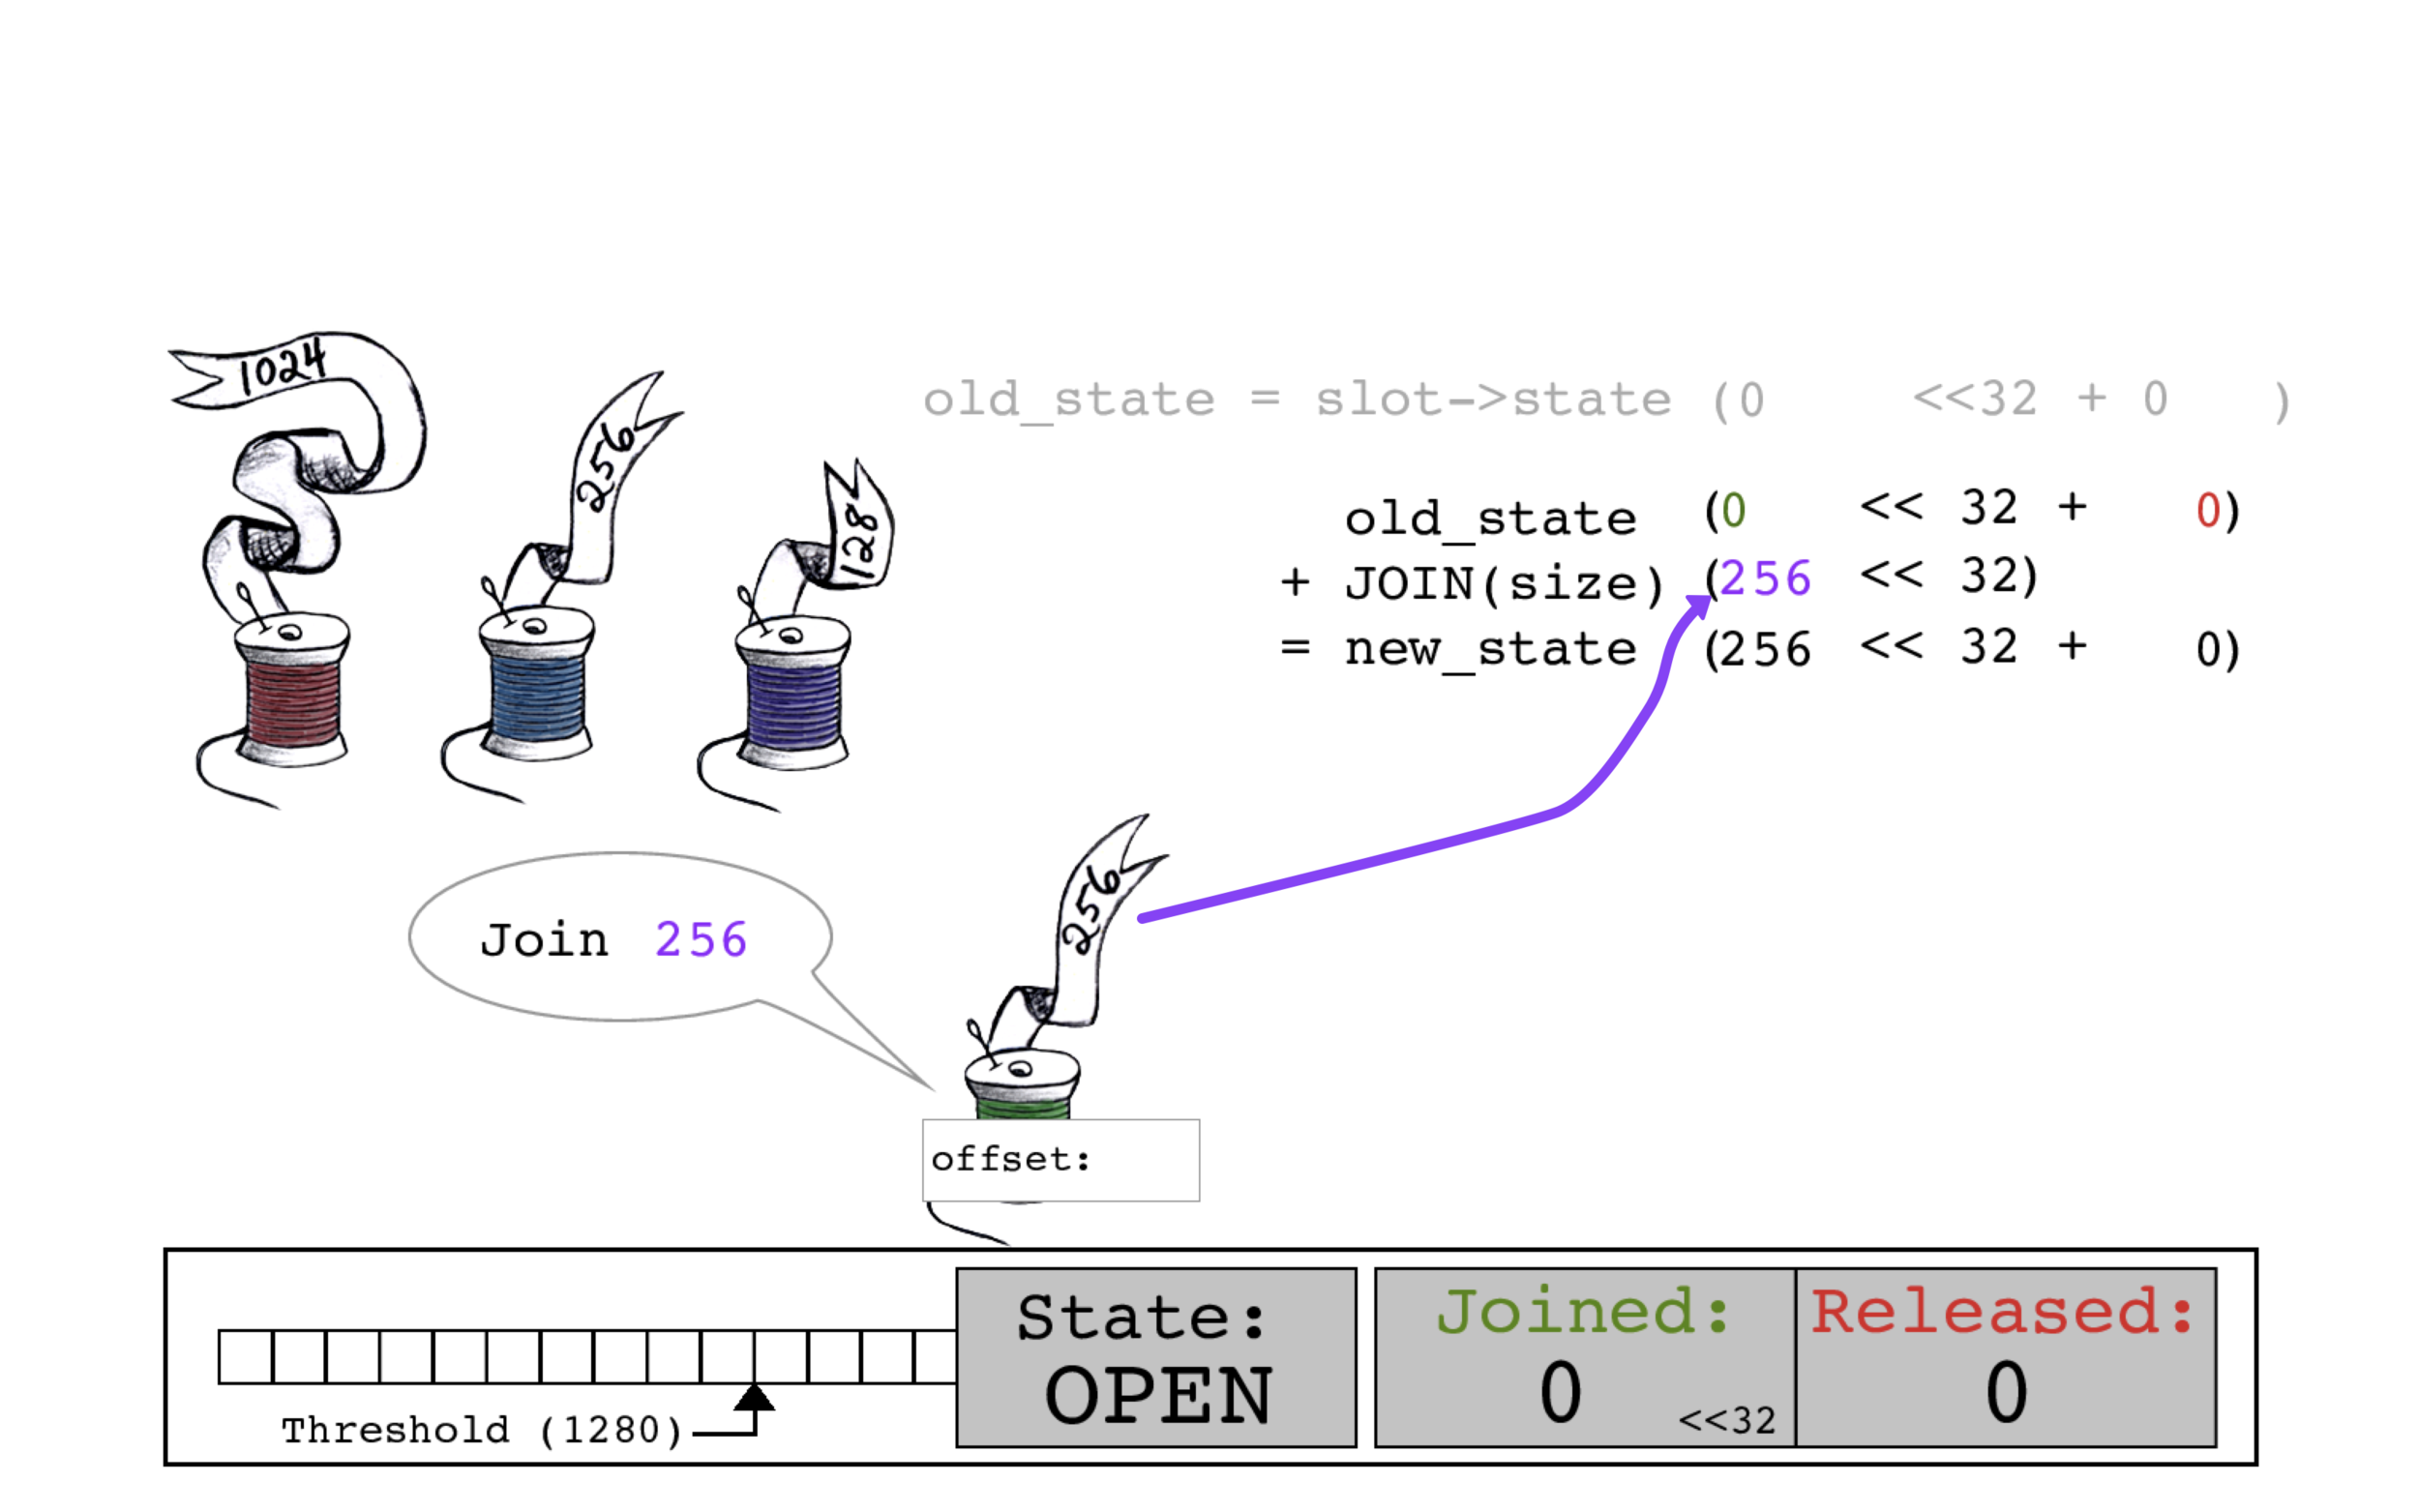 Green thread calculates a new_state by adding its size of 256 to the JOINED bits.